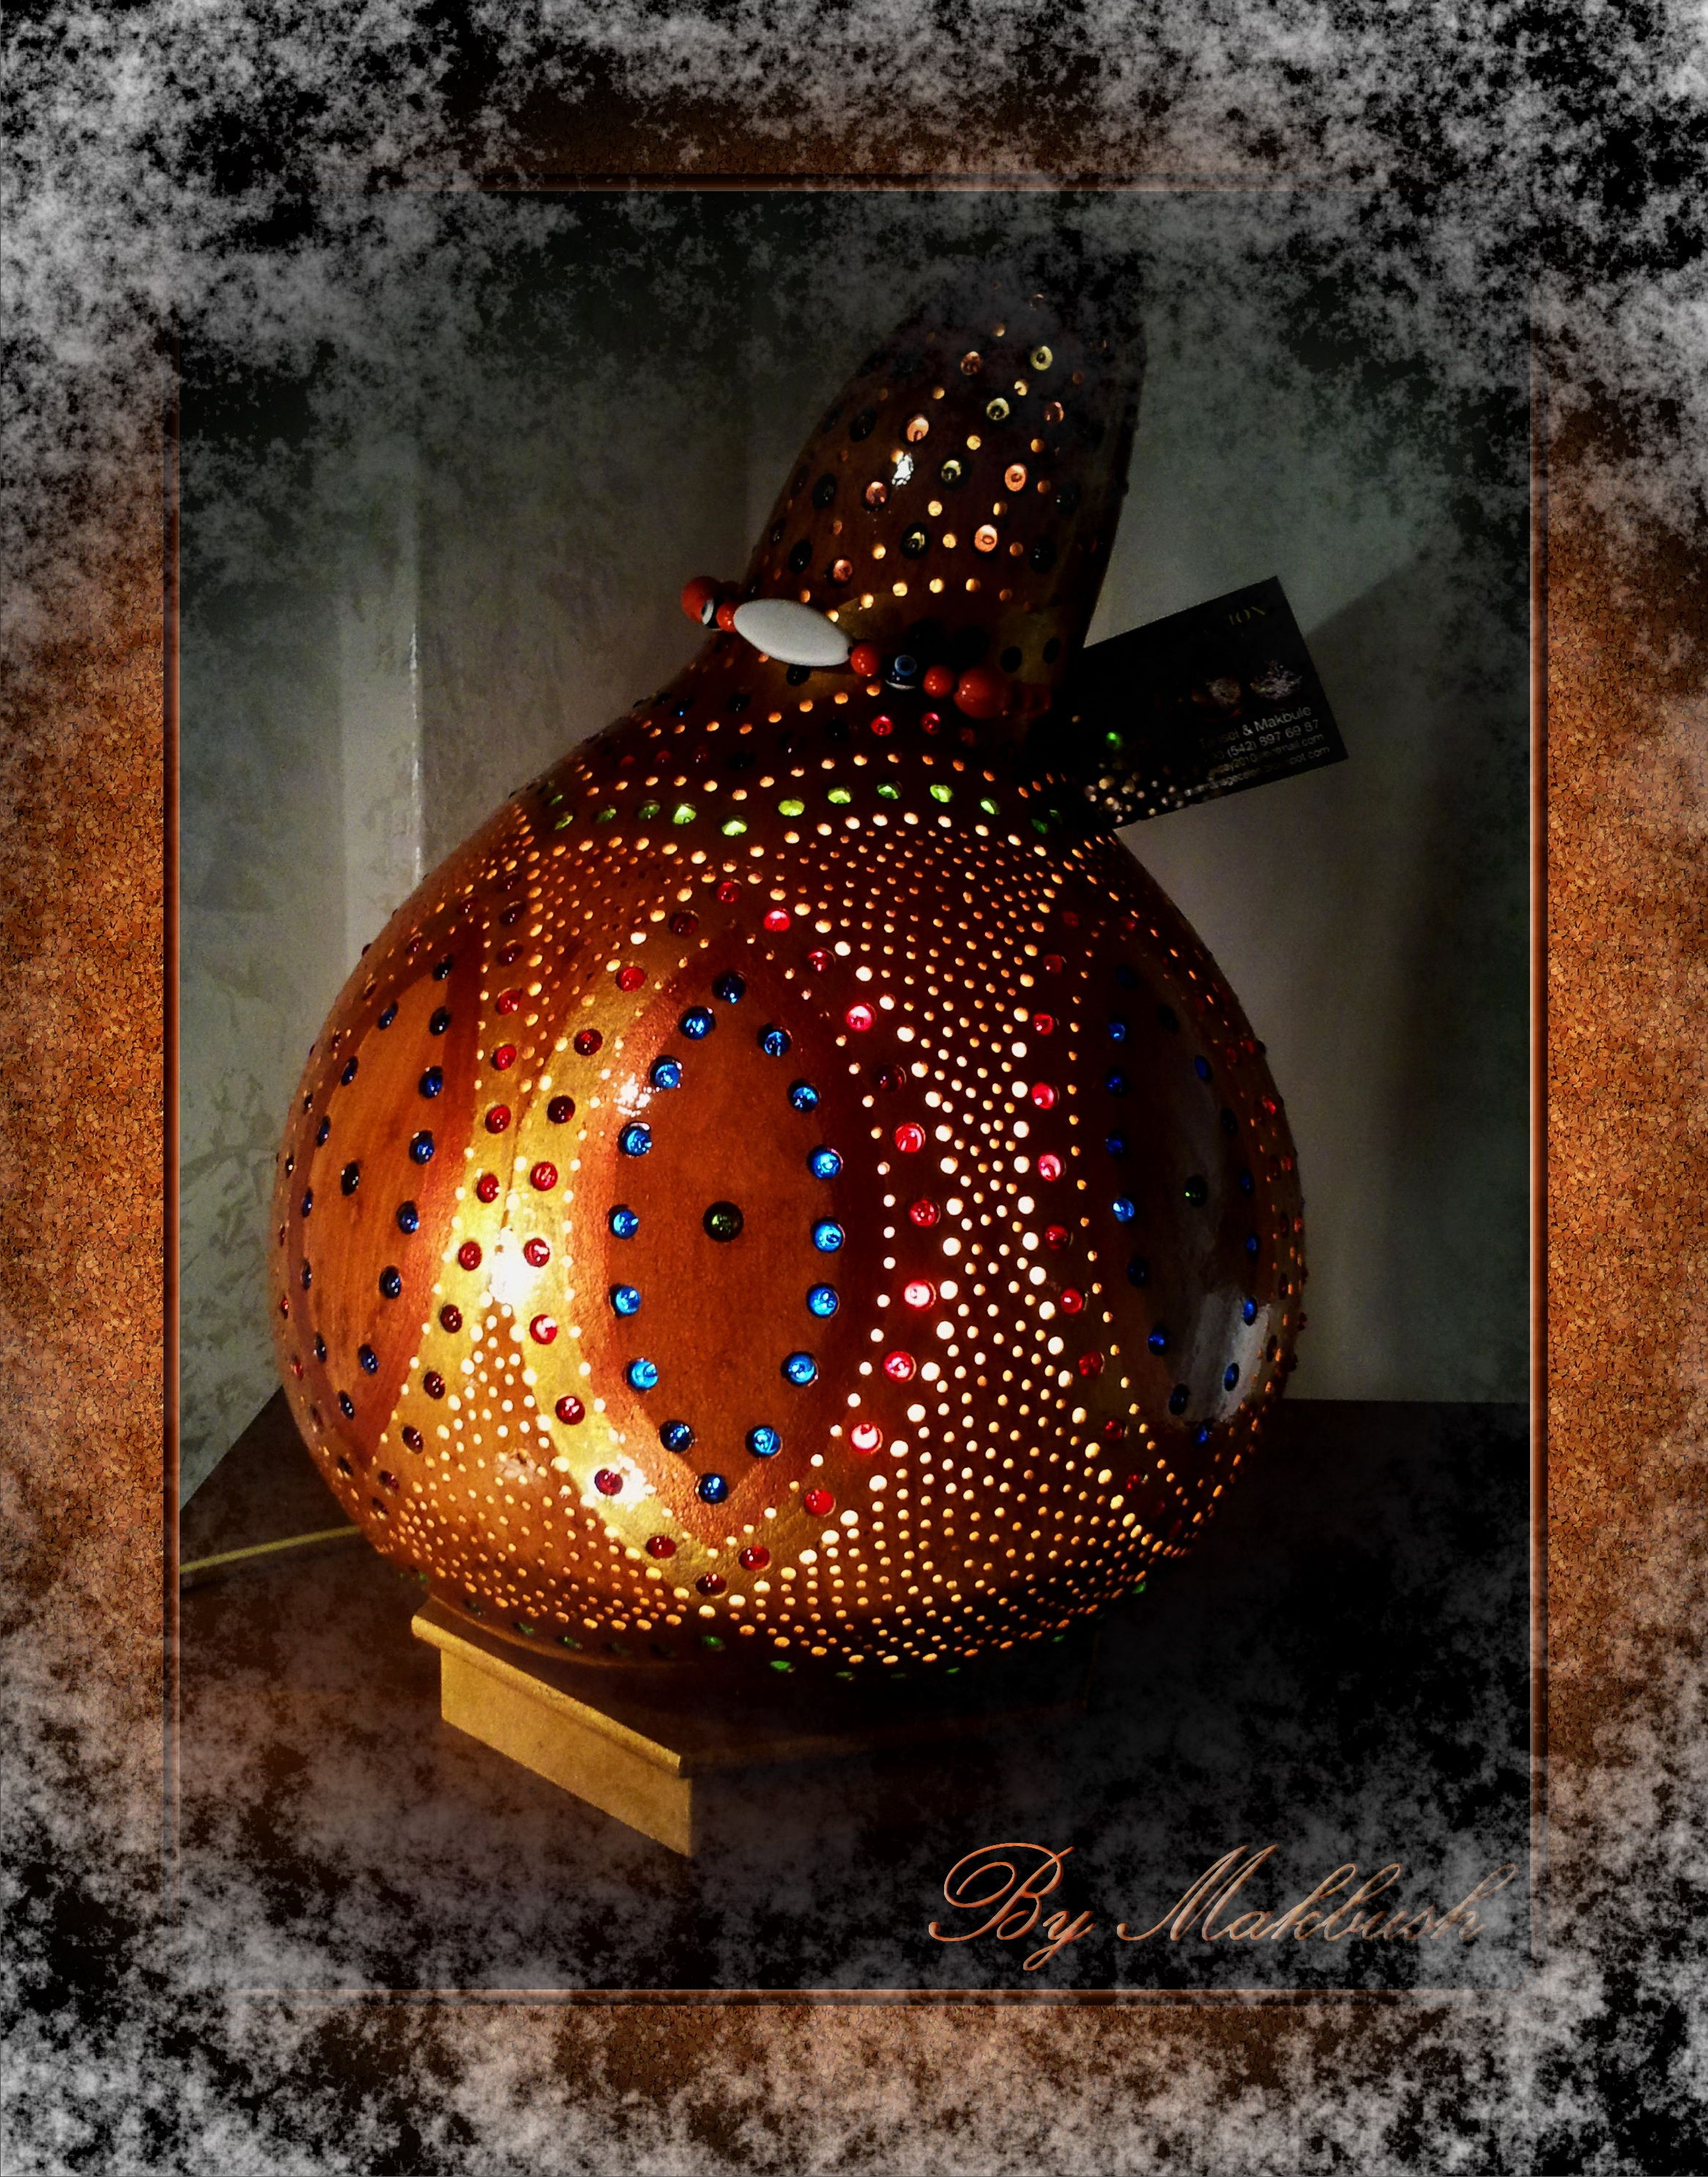 available vorrtig 149 authentischen krbis lampen autentici lampade zucca authentic gourd lamp - Krbis Tischlampen